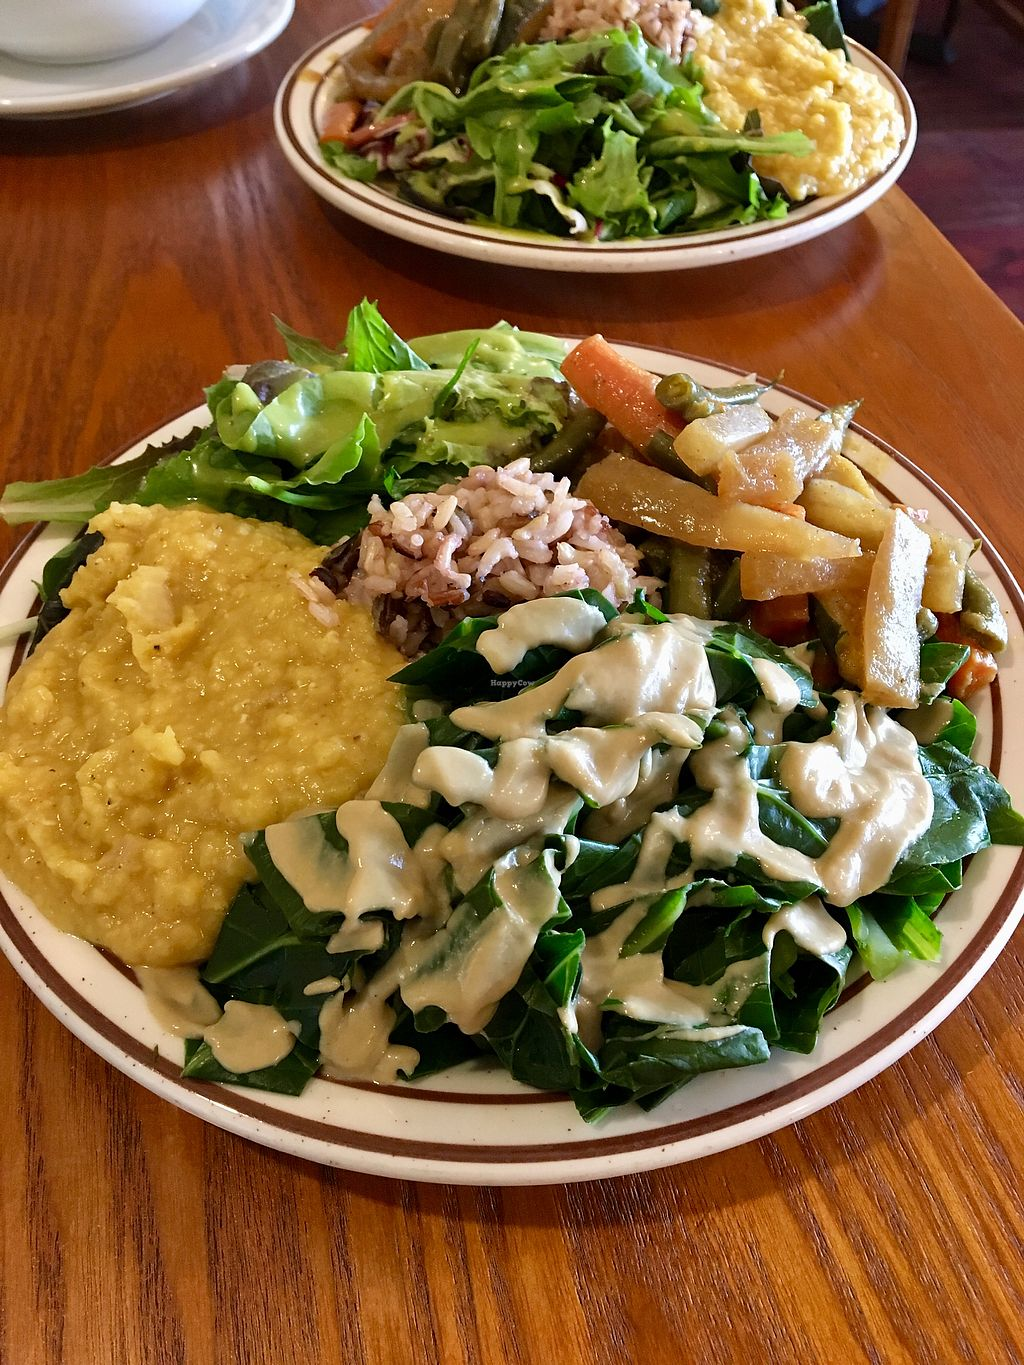 """Photo of Shangri-La Vegan - Telegraph  by <a href=""""/members/profile/Clean%26Green"""">Clean&Green</a> <br/>Moderate plate <br/> December 4, 2017  - <a href='/contact/abuse/image/74865/332136'>Report</a>"""